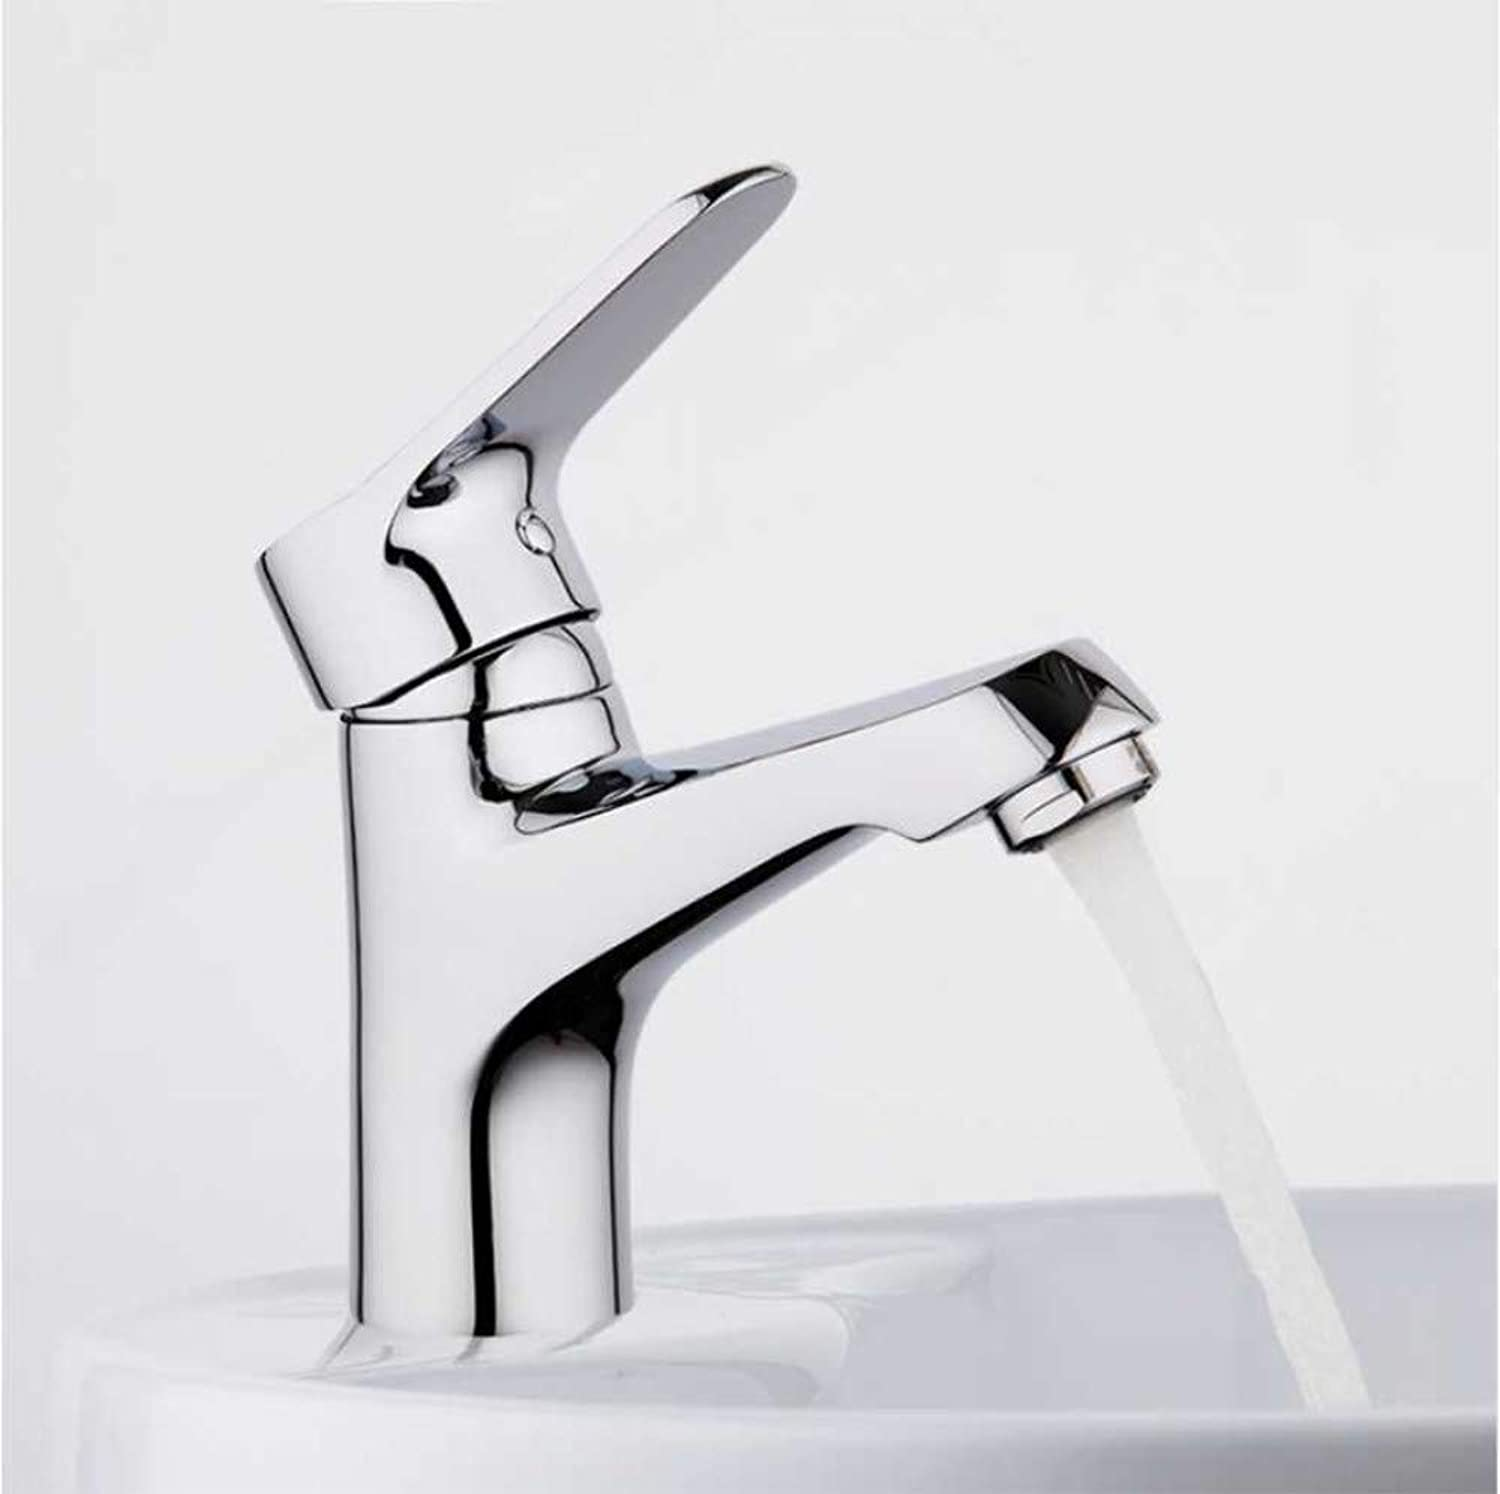 Jukunlun Water Mixer Bathroom Sink Faucet Basin Faucet Chrome Brass Faucet Tap Basin Faucets Single Hole Basin Sink Mixer Tap